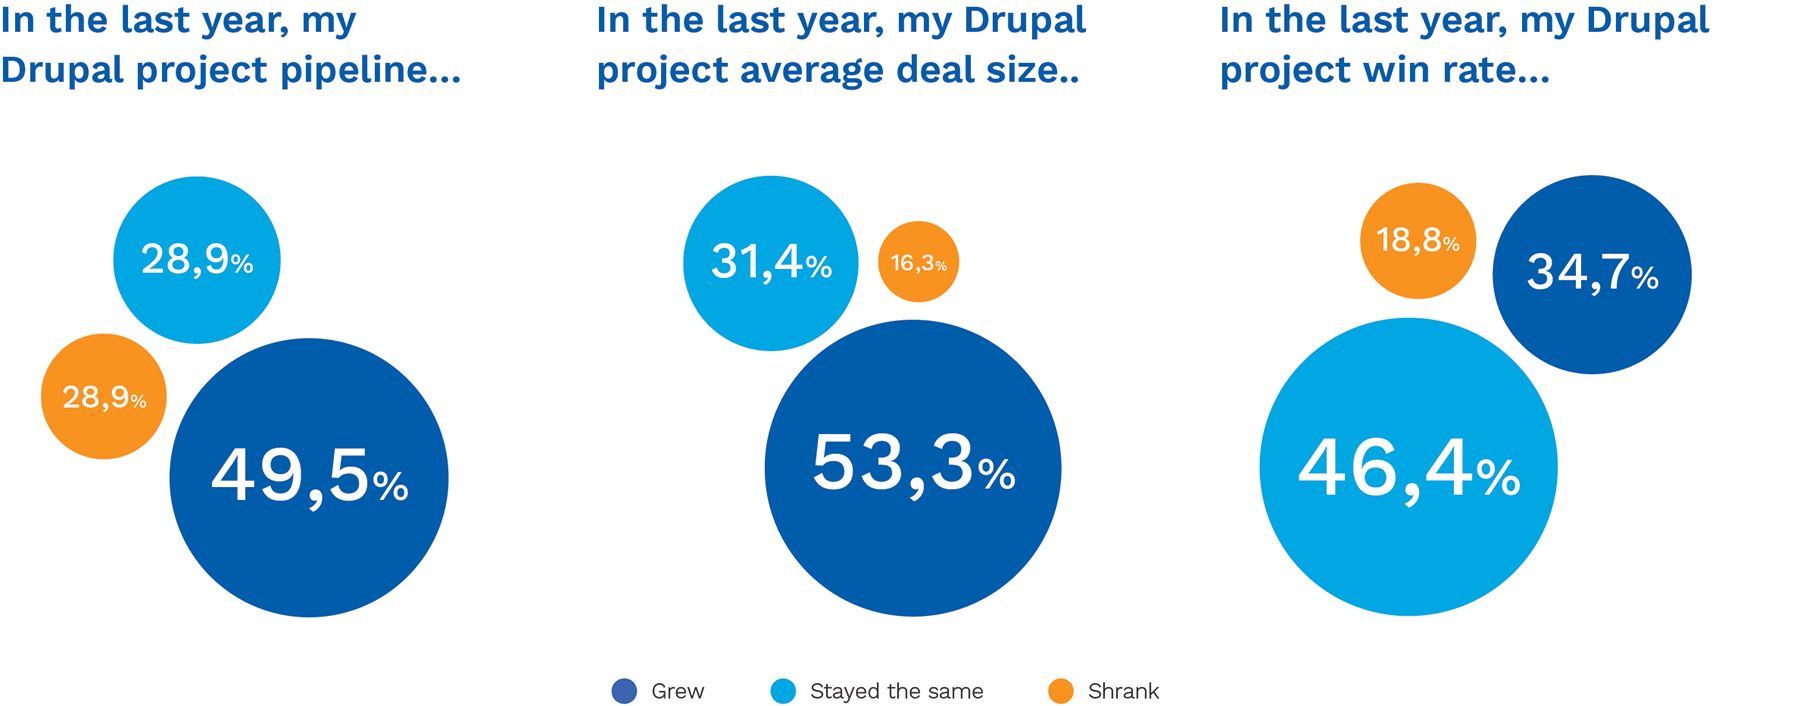 Drupal project win-rate